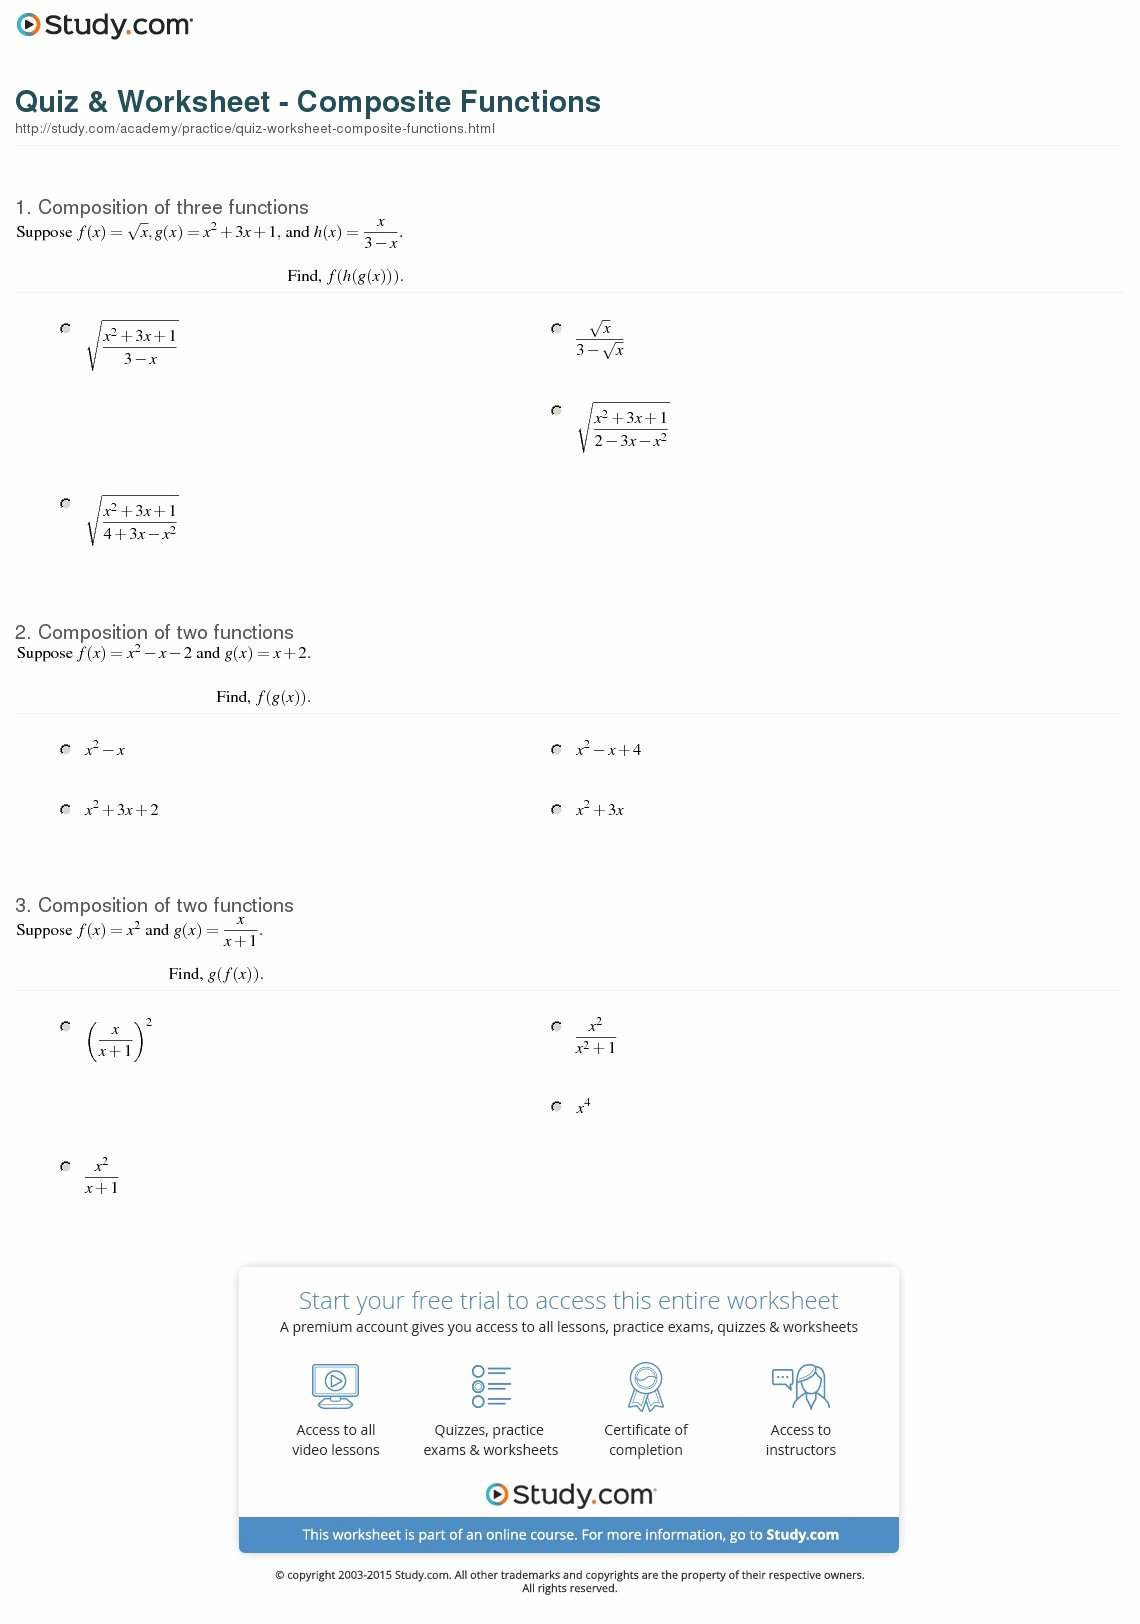 Composite Functions Worksheet Answers Luxury Quiz & Worksheet Posite Functions